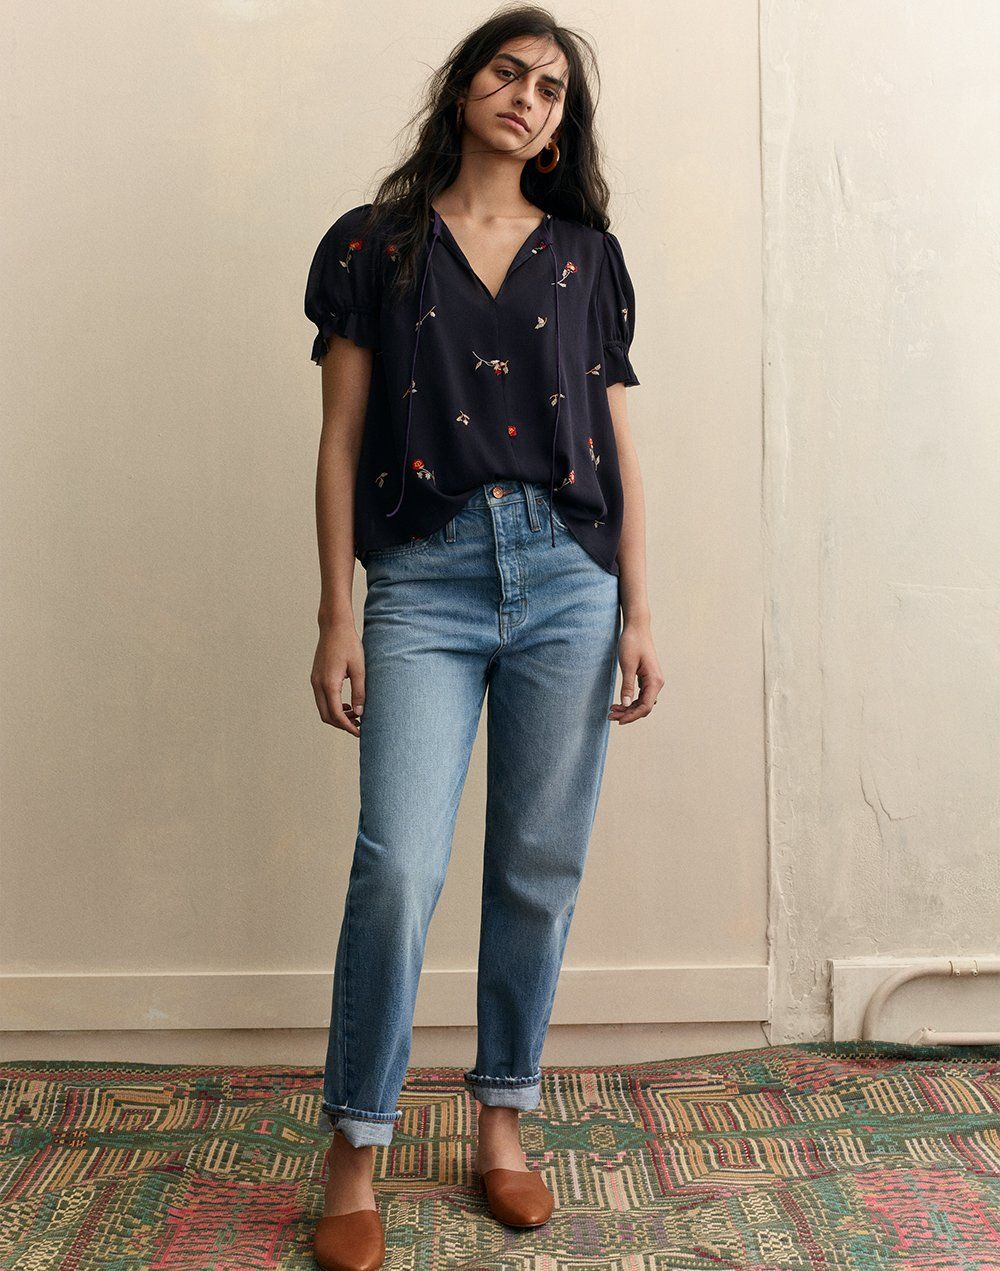 ad5a1df8df madewell dadjean worn with embroidered zephyr top + the remi mule ...